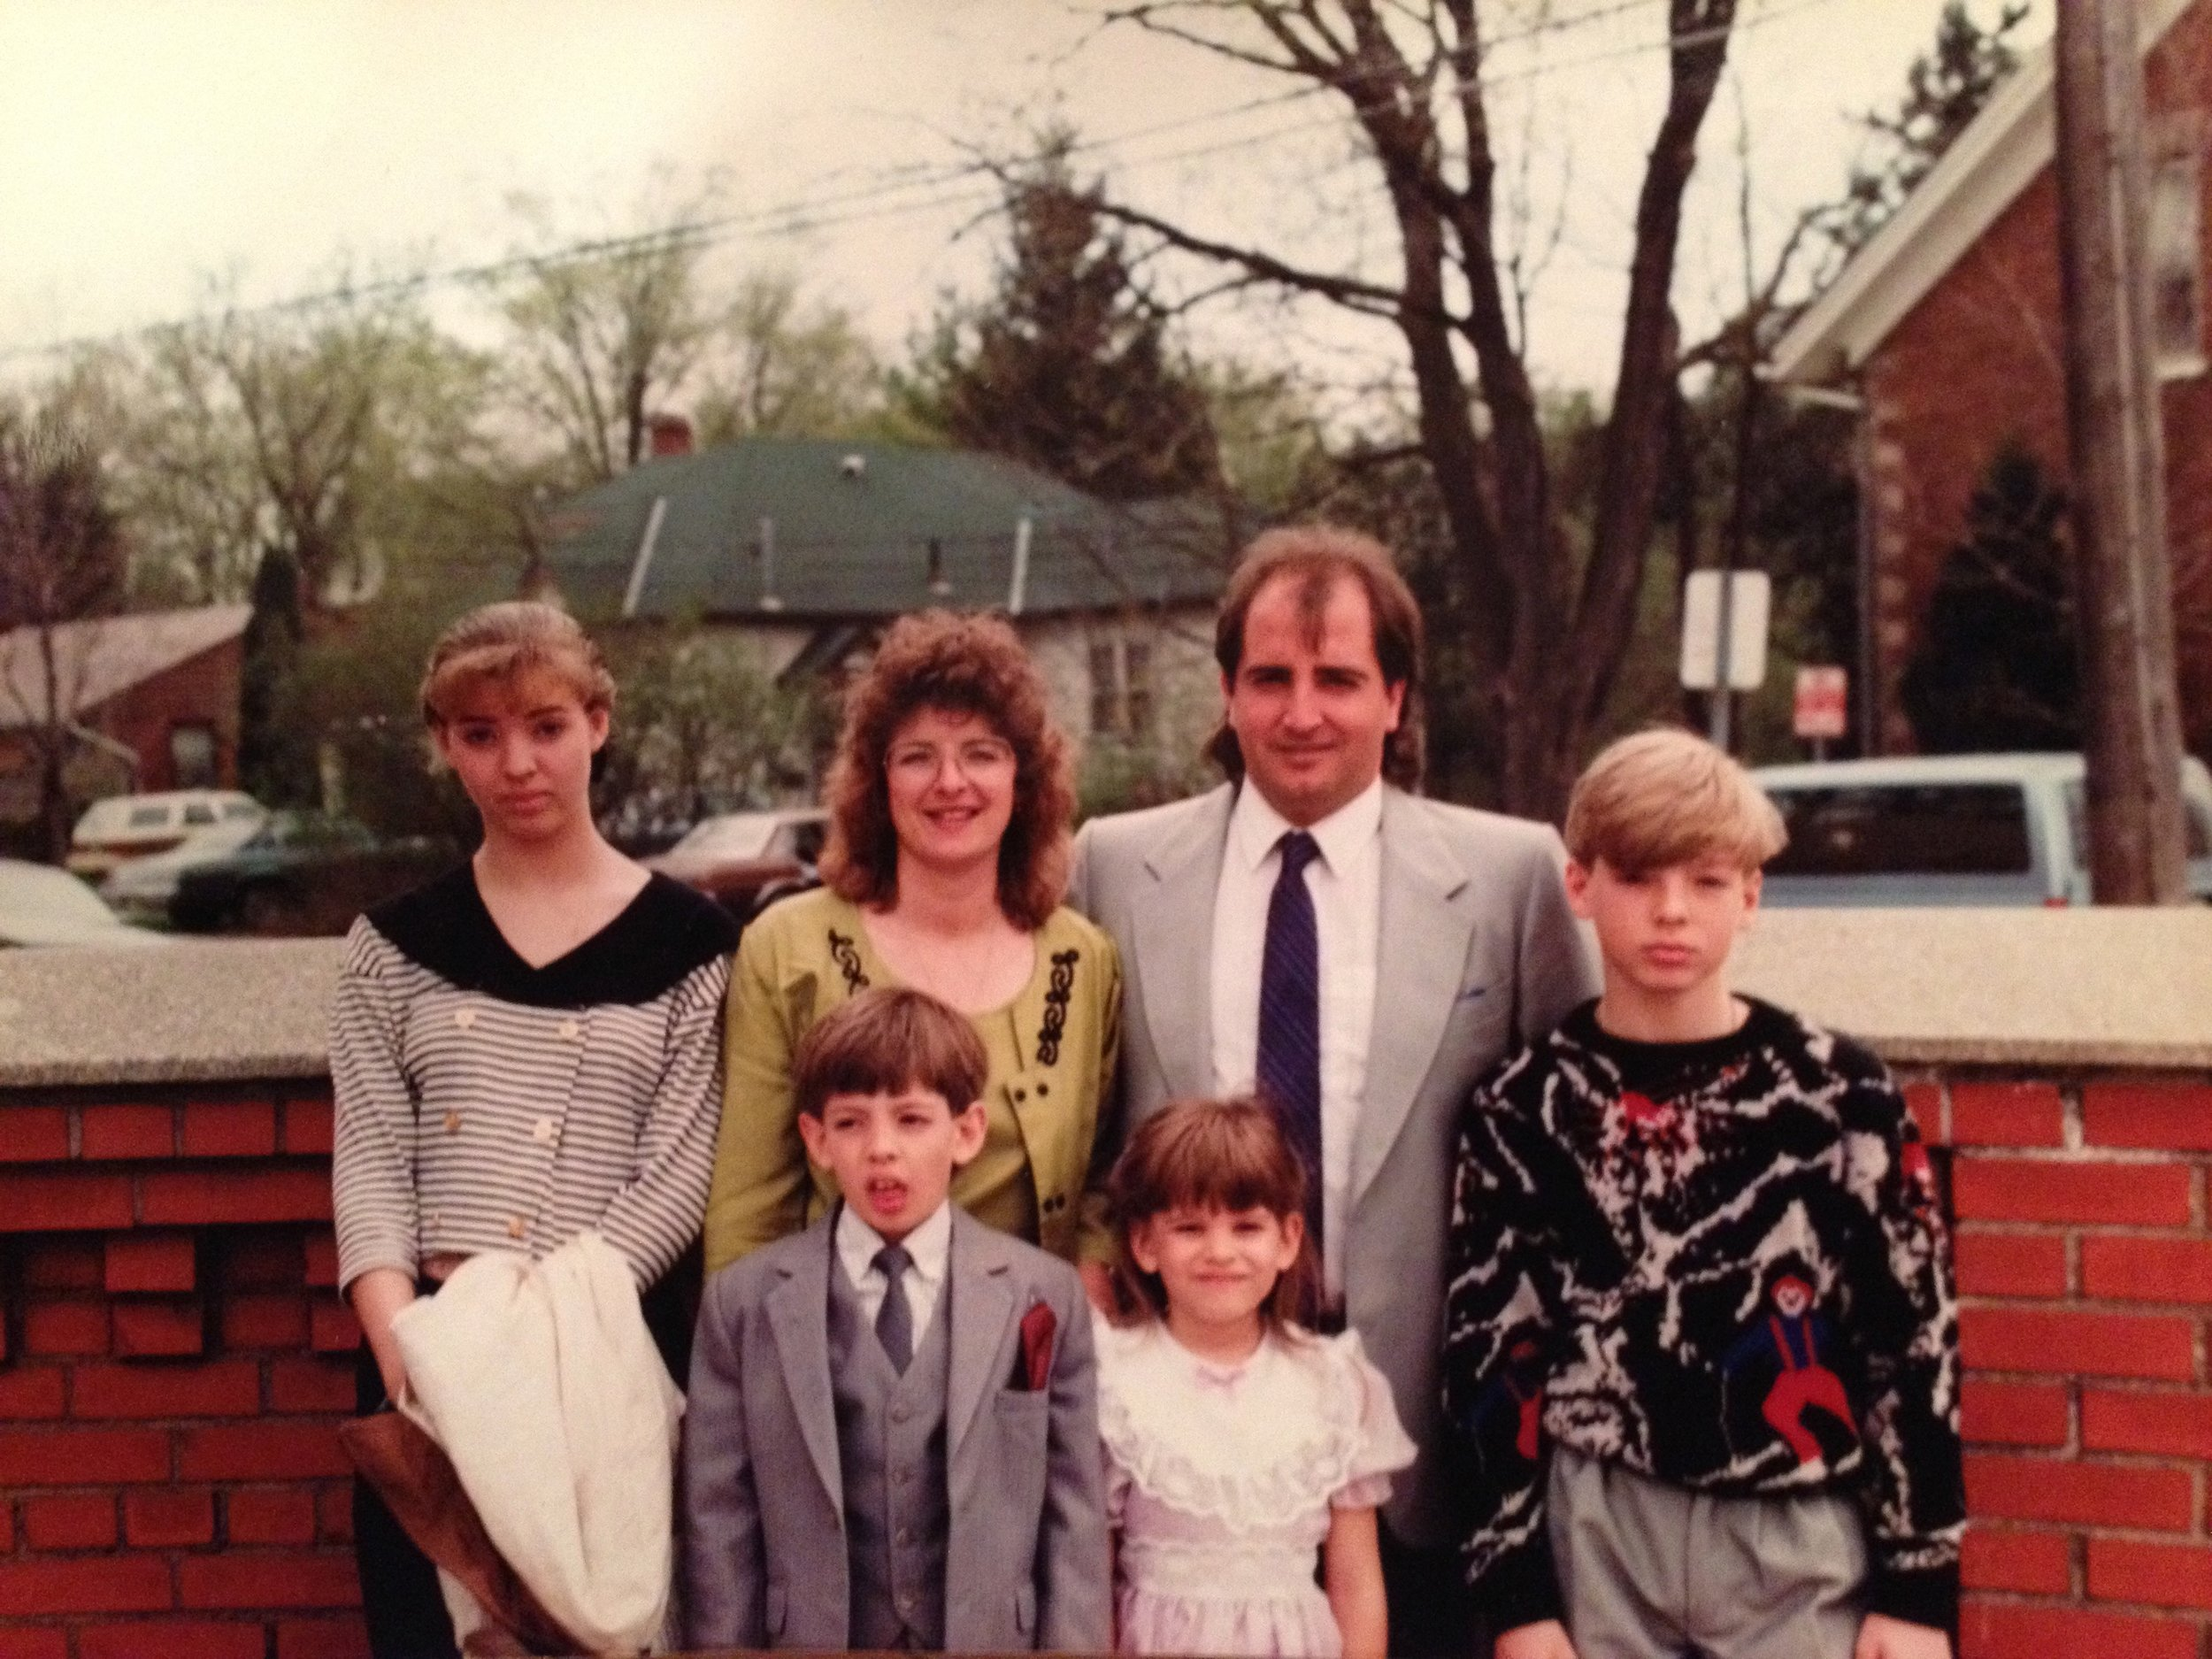 Awkward family photo circa 1990. Heading to my brother Paul's First Communion. From back left: sister Joanne, mom Lorraine, dad Sam, brothers Scott, Paul, and myself.